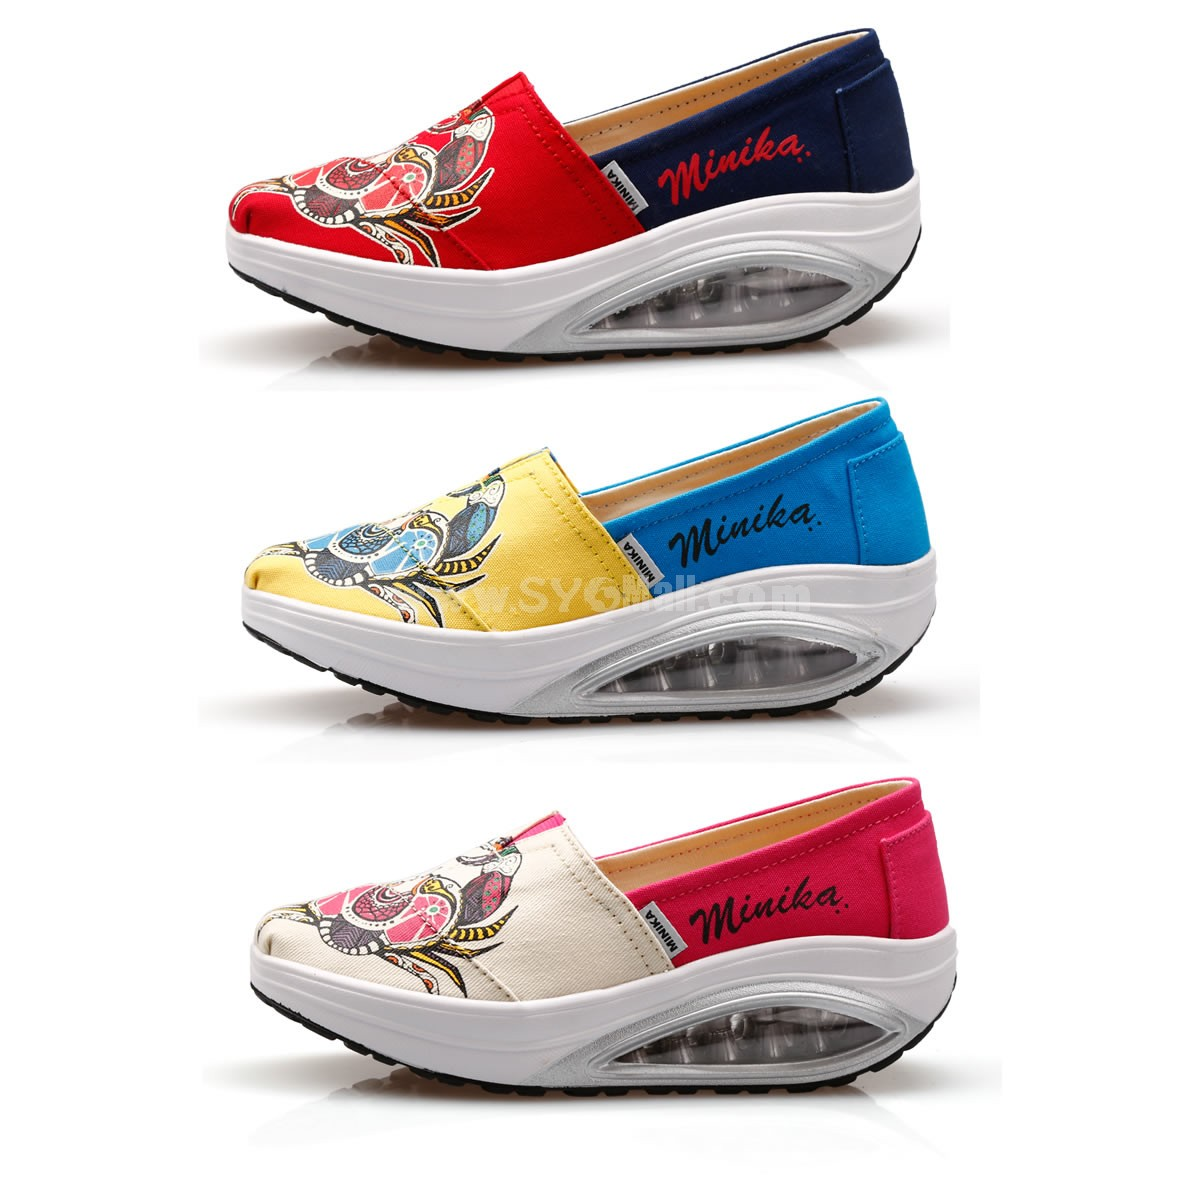 Women's Canvas Platforms Slip On Sneakers Athletic Air Cushion Walking Shoes 1556